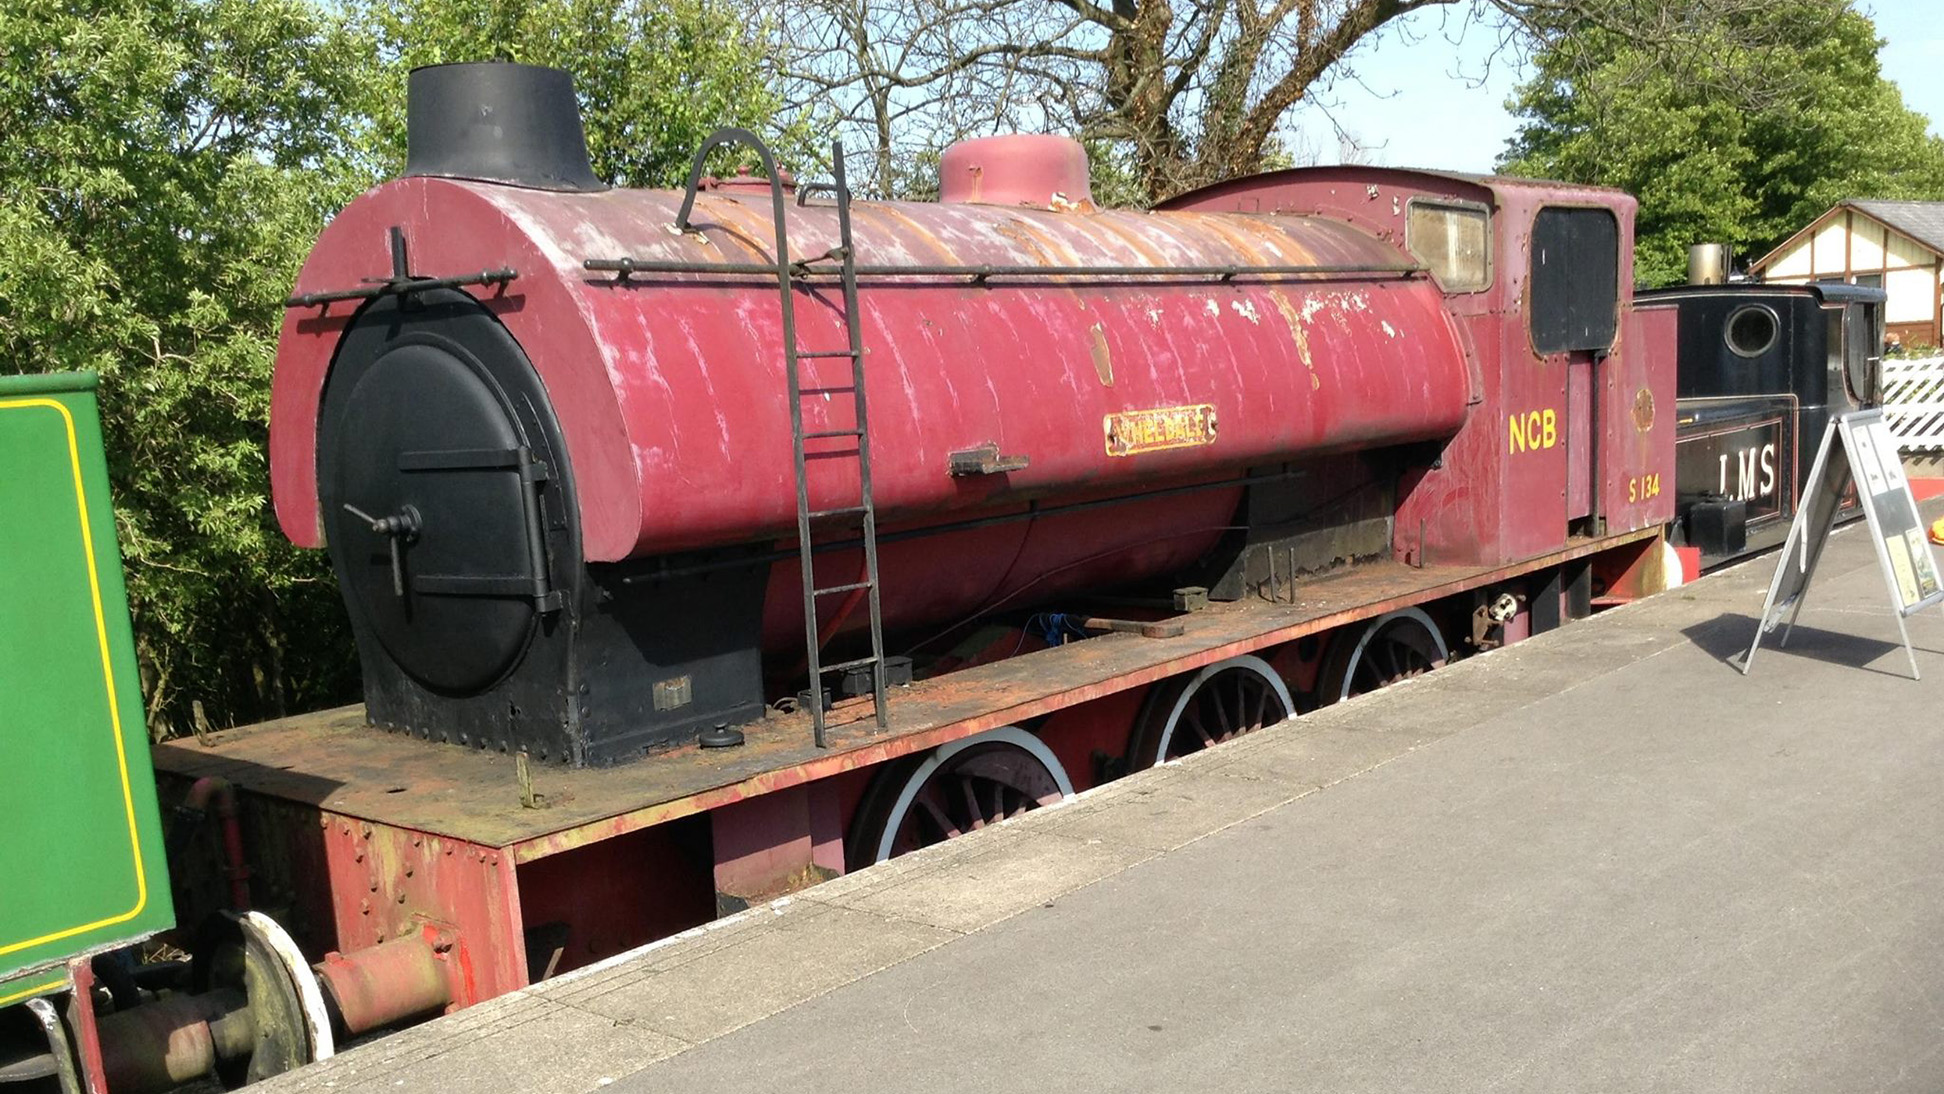 Wheldale - a sorry sight at the end of Bolton Abbey Station - help us raise funds for her restoration!